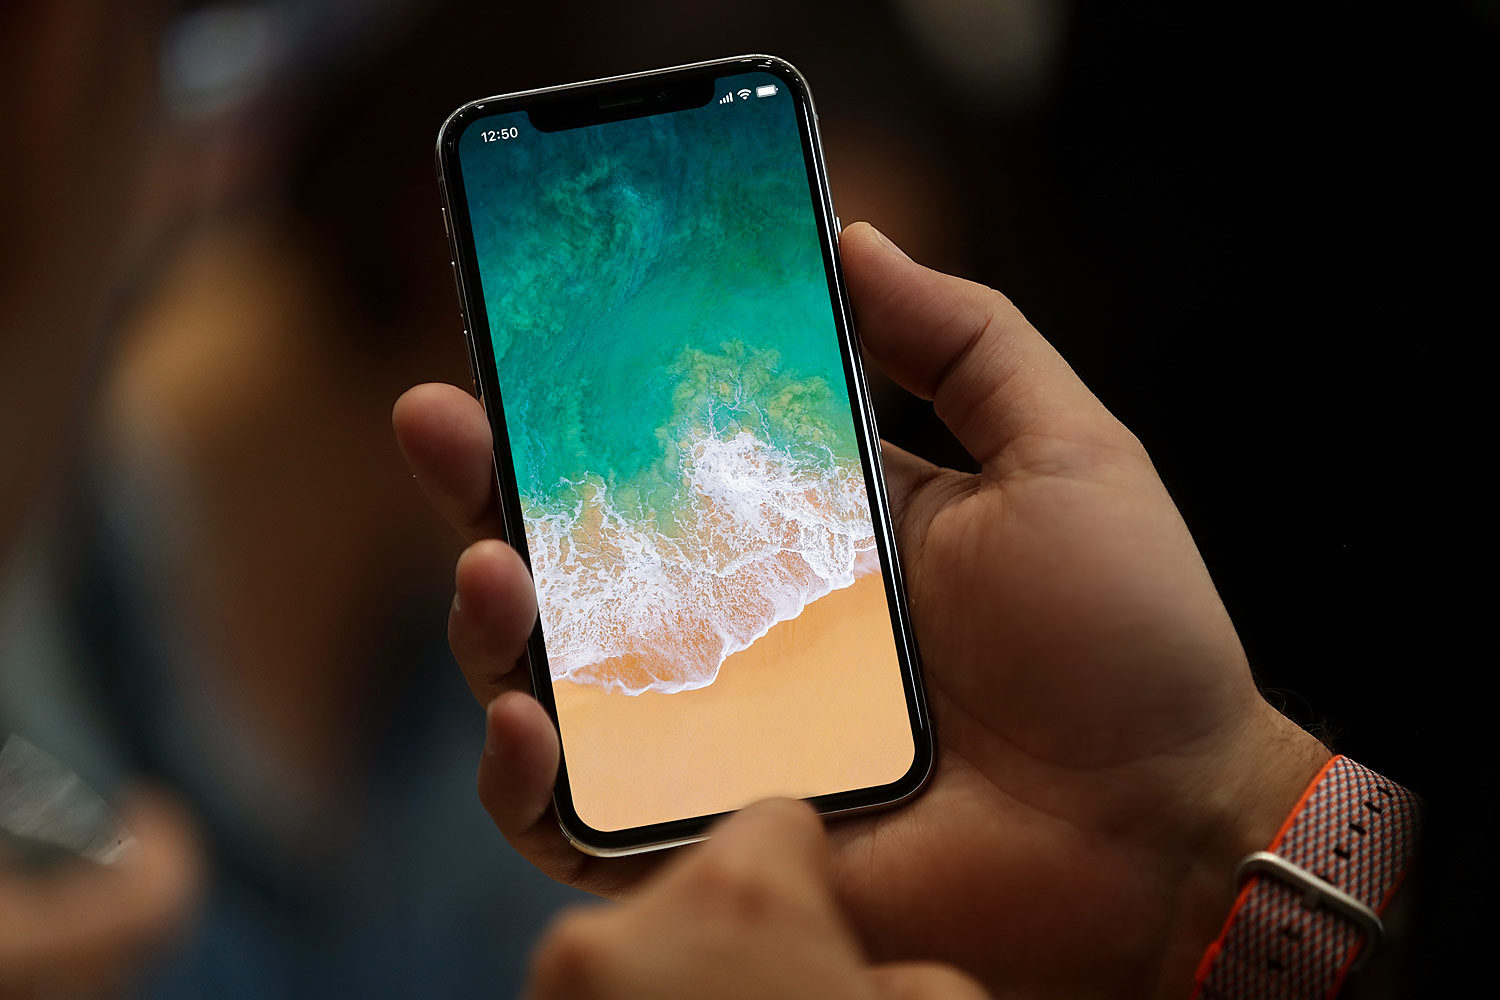 iPhone X with Status Bar in Hand Free Mockup